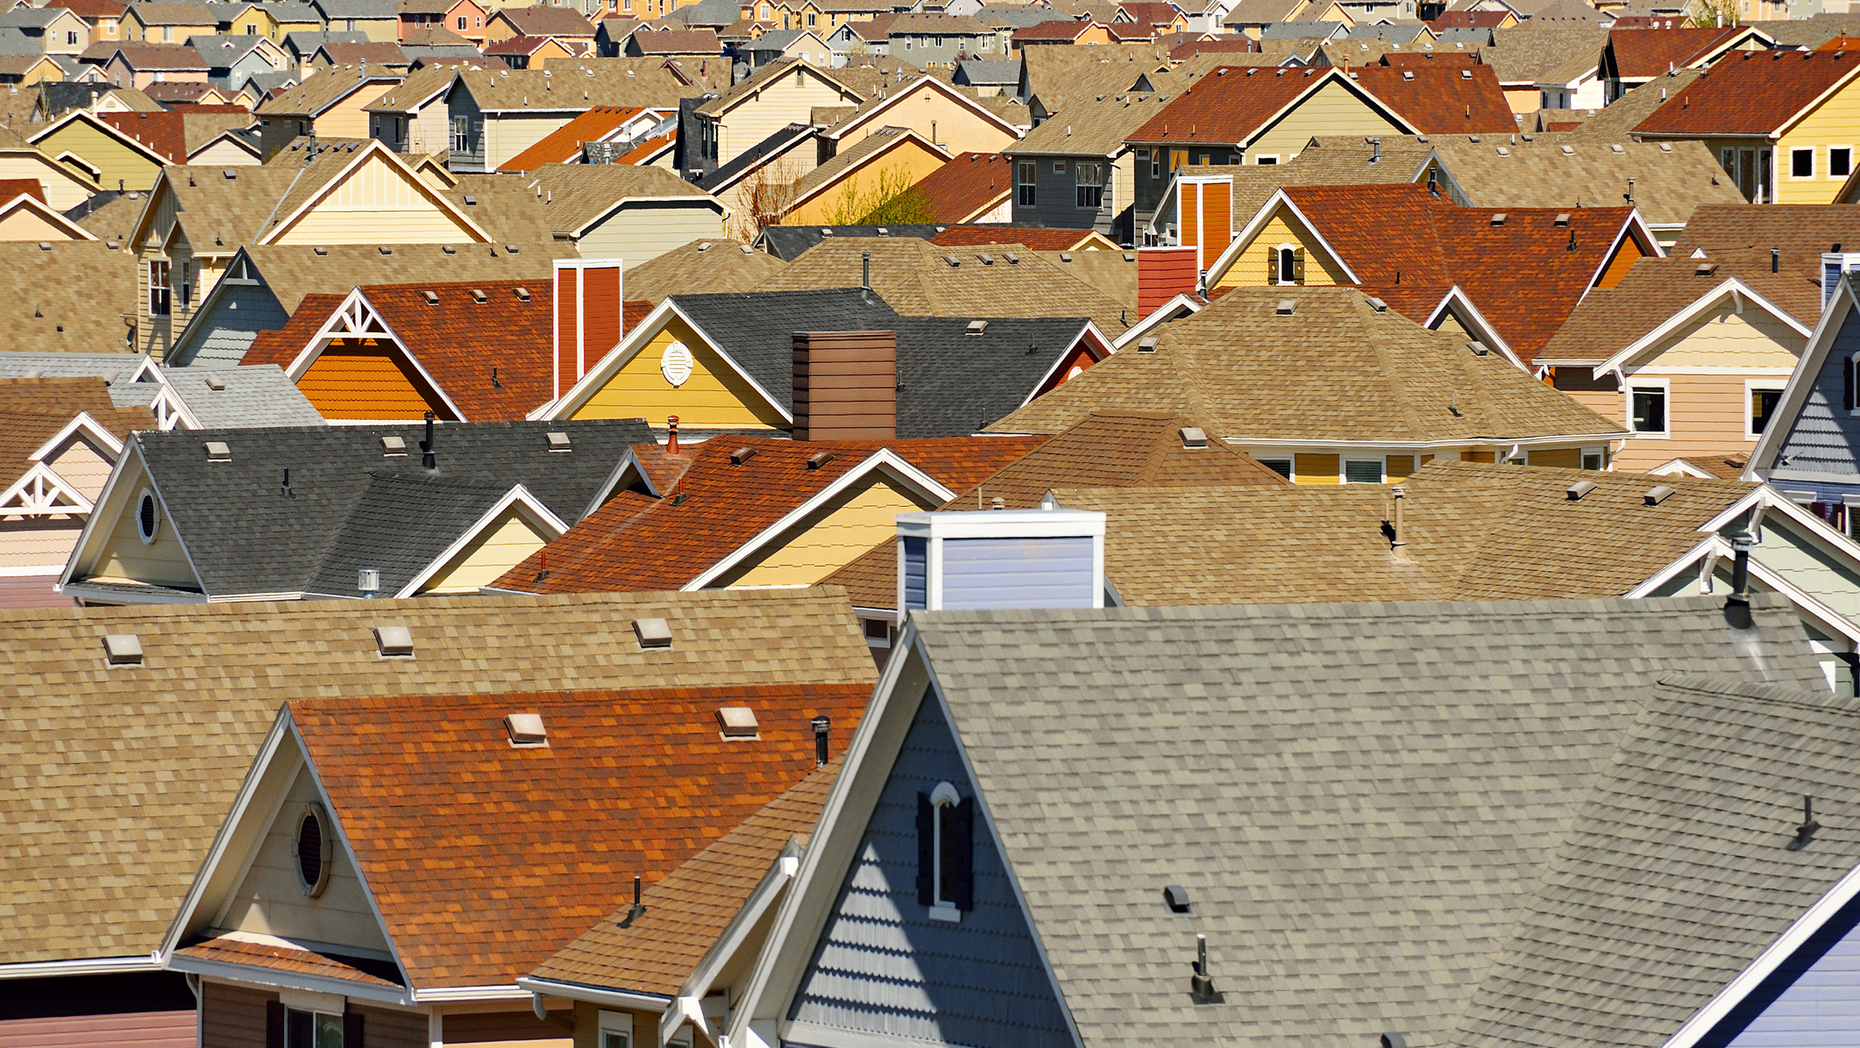 Even as virus spread in March, home prices grew modestly